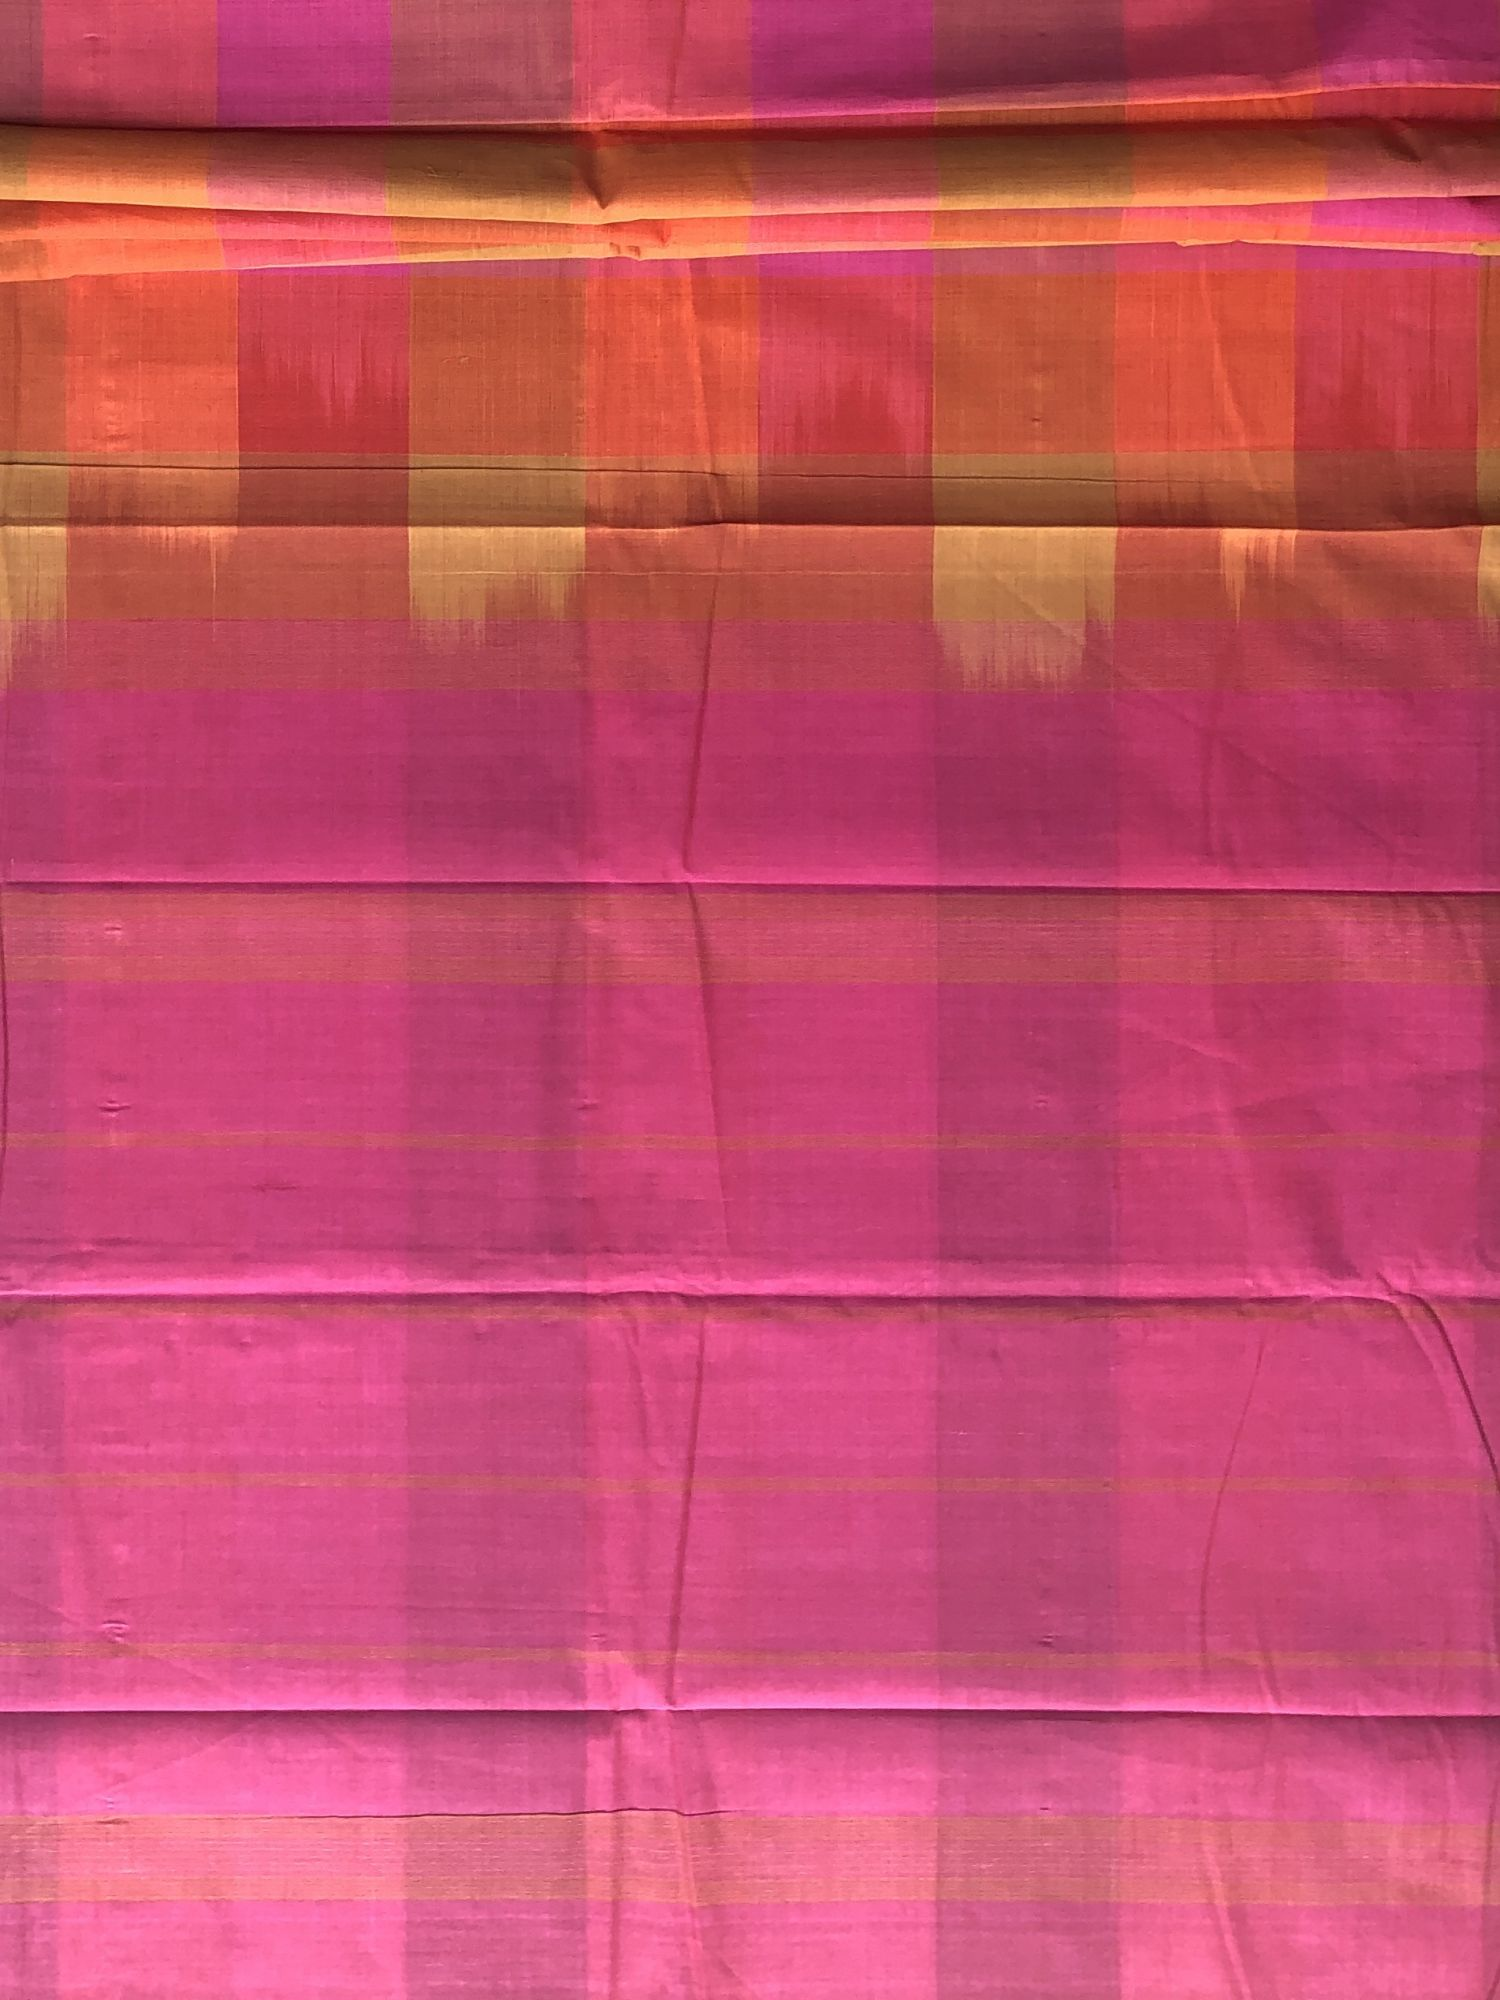 The Miṭṭāy Kattam Saree